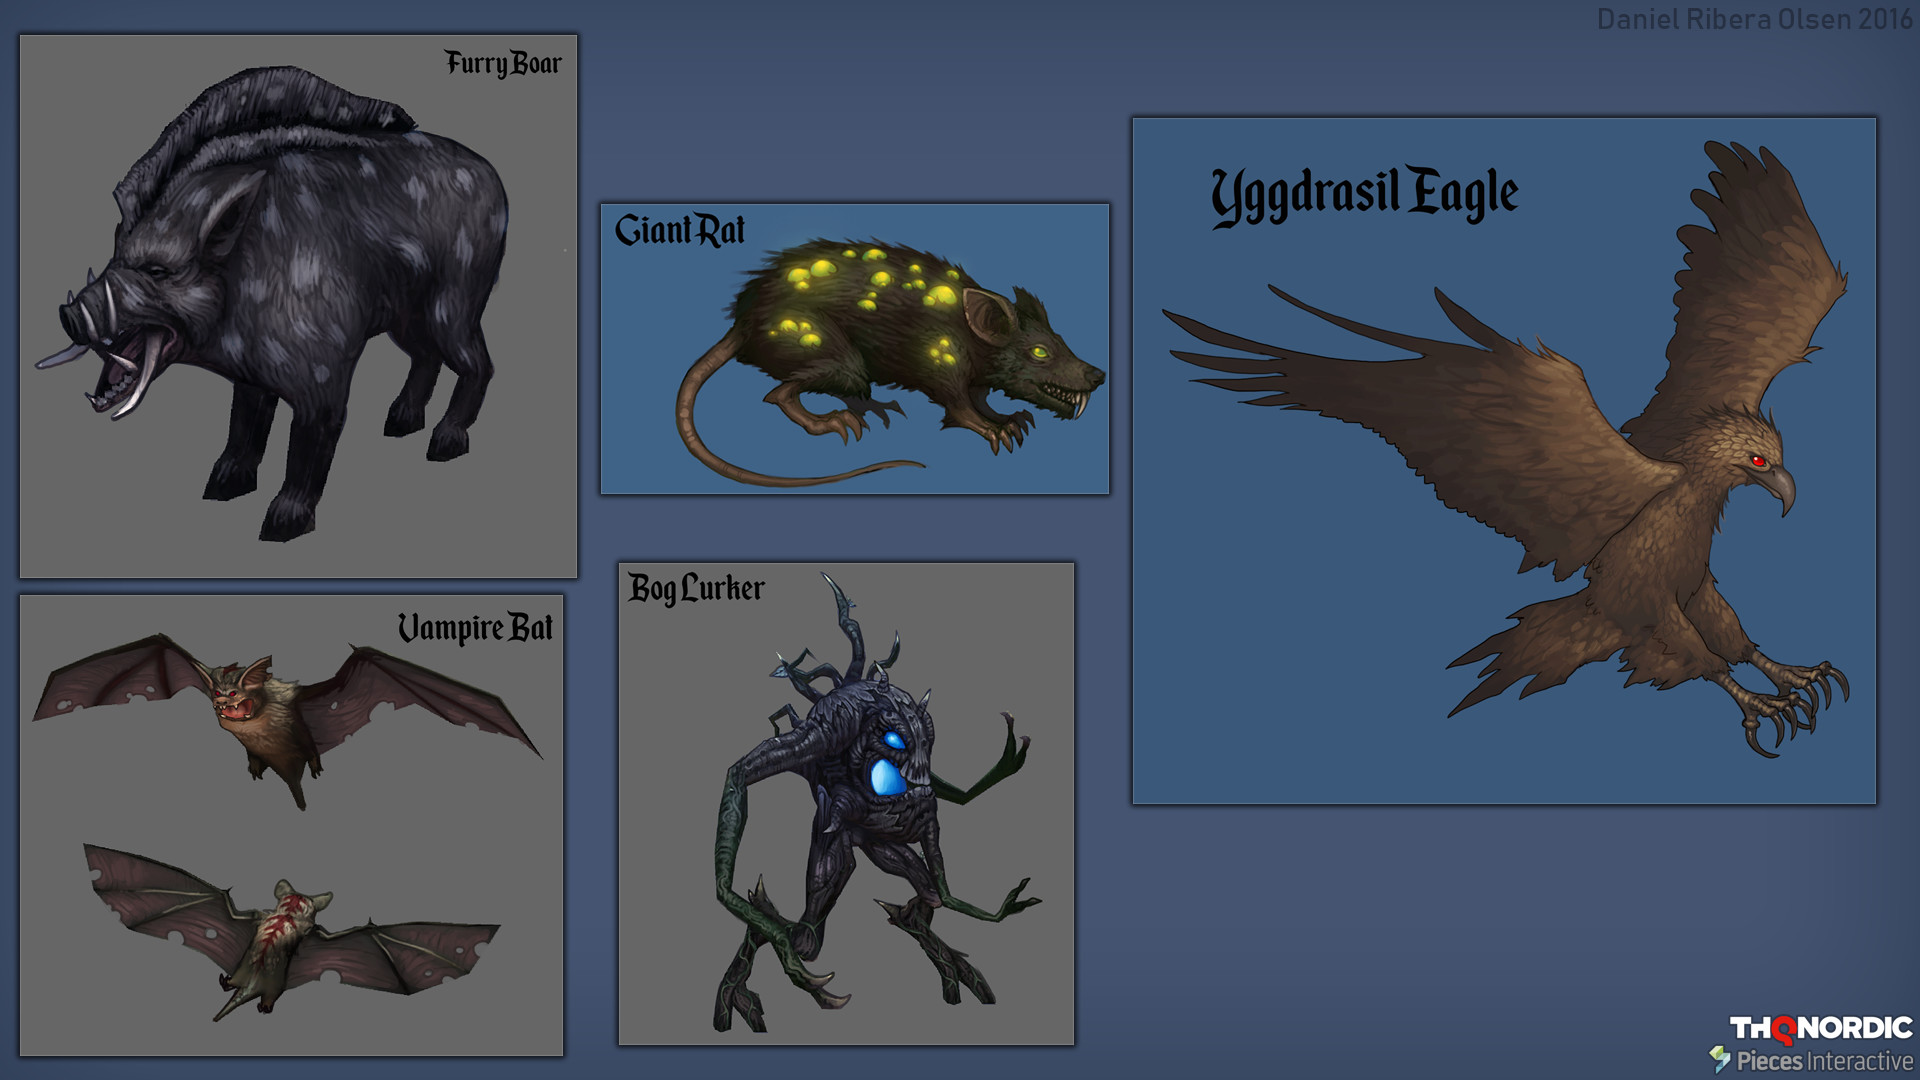 Many enemies were returning in new forms, so these are paintovers of old ingame models